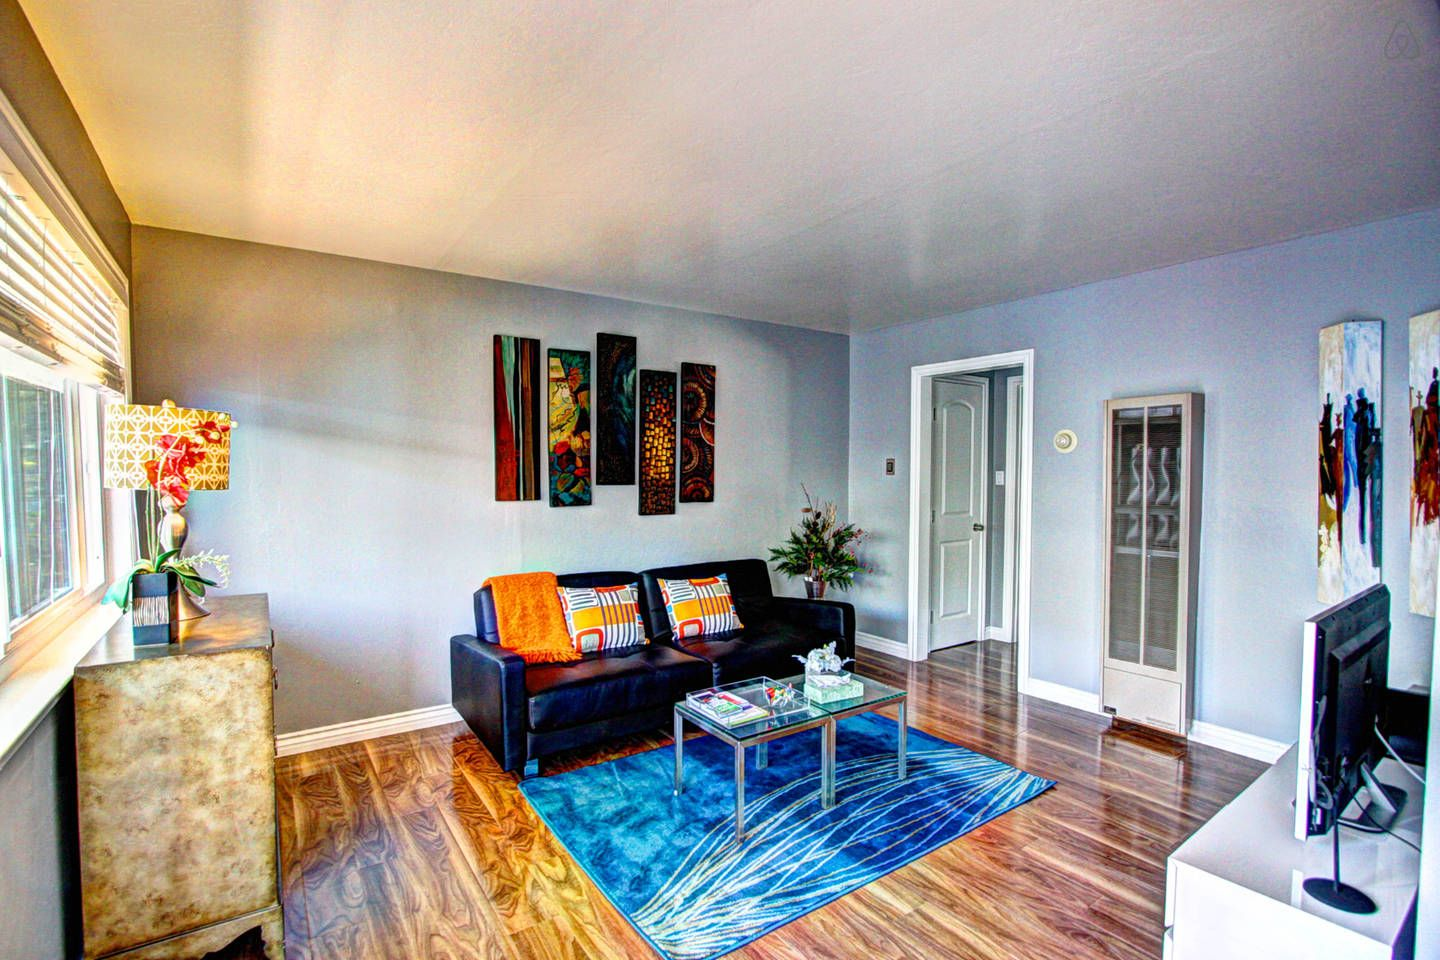 Modern Condo-JapanTown-DownTown SJ - vacation rental in ...